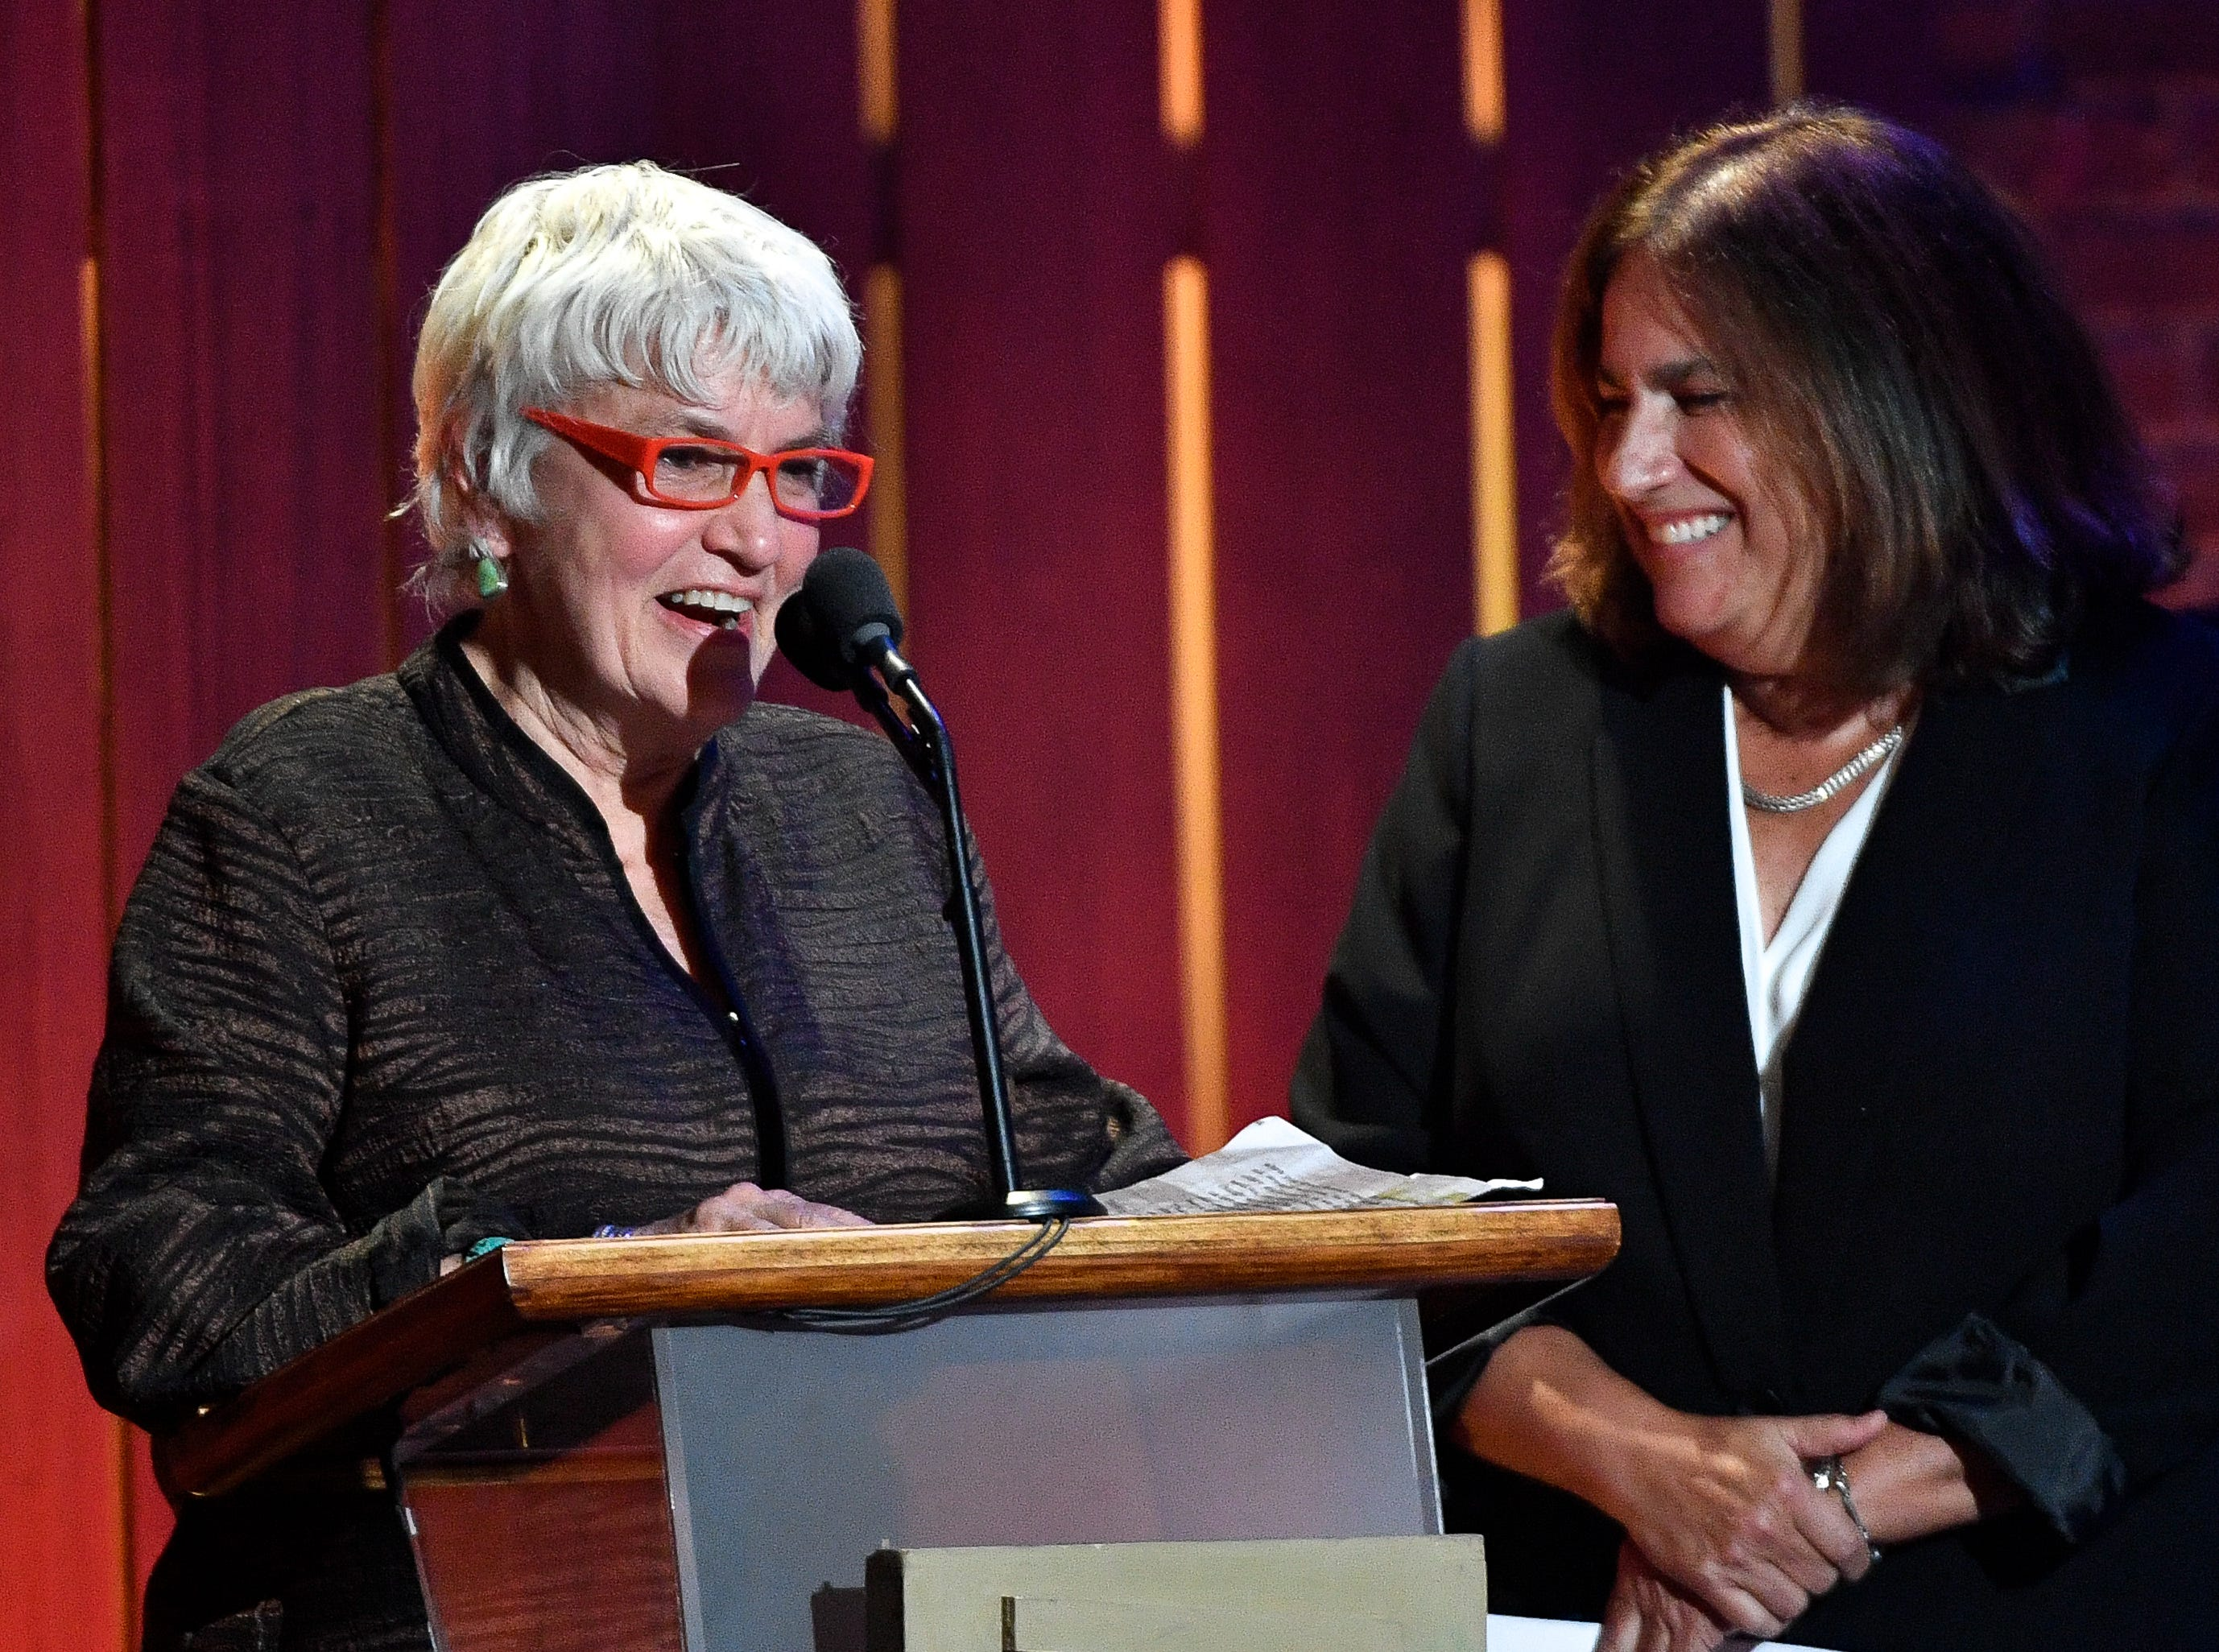 Cris Williamson, left, and Judy Dlugacz, right, accept the Lifetime Executive award during the 2018 Americana Honors and Awards show at the Ryman Auditorium in Nashville, Tenn., Wednesday, Sept. 12, 2018.